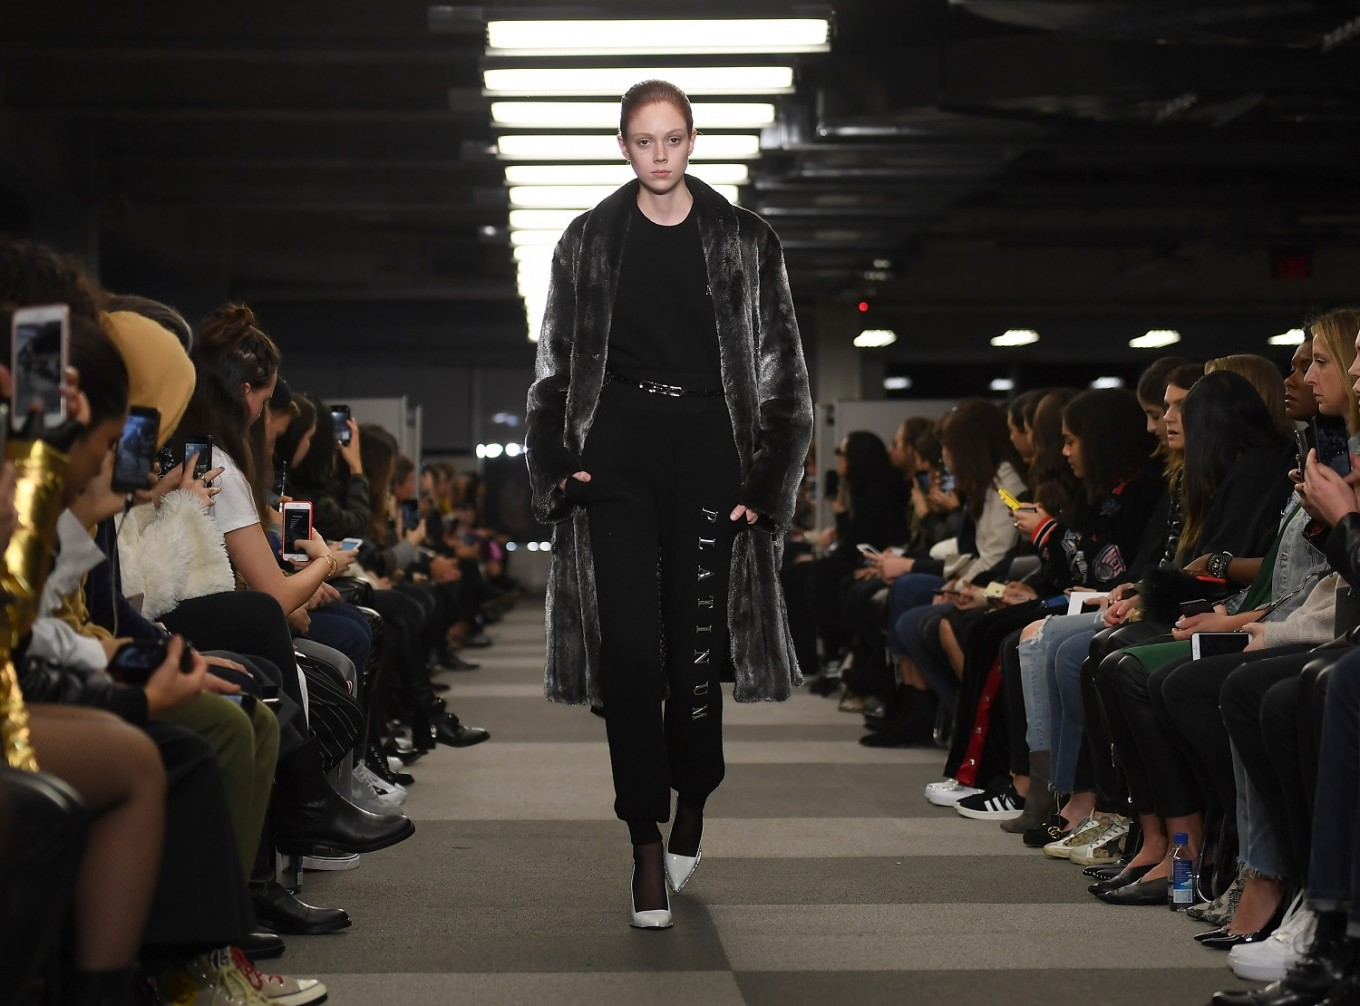 Wang in the office, Plein in outer space at NY Fashion Week